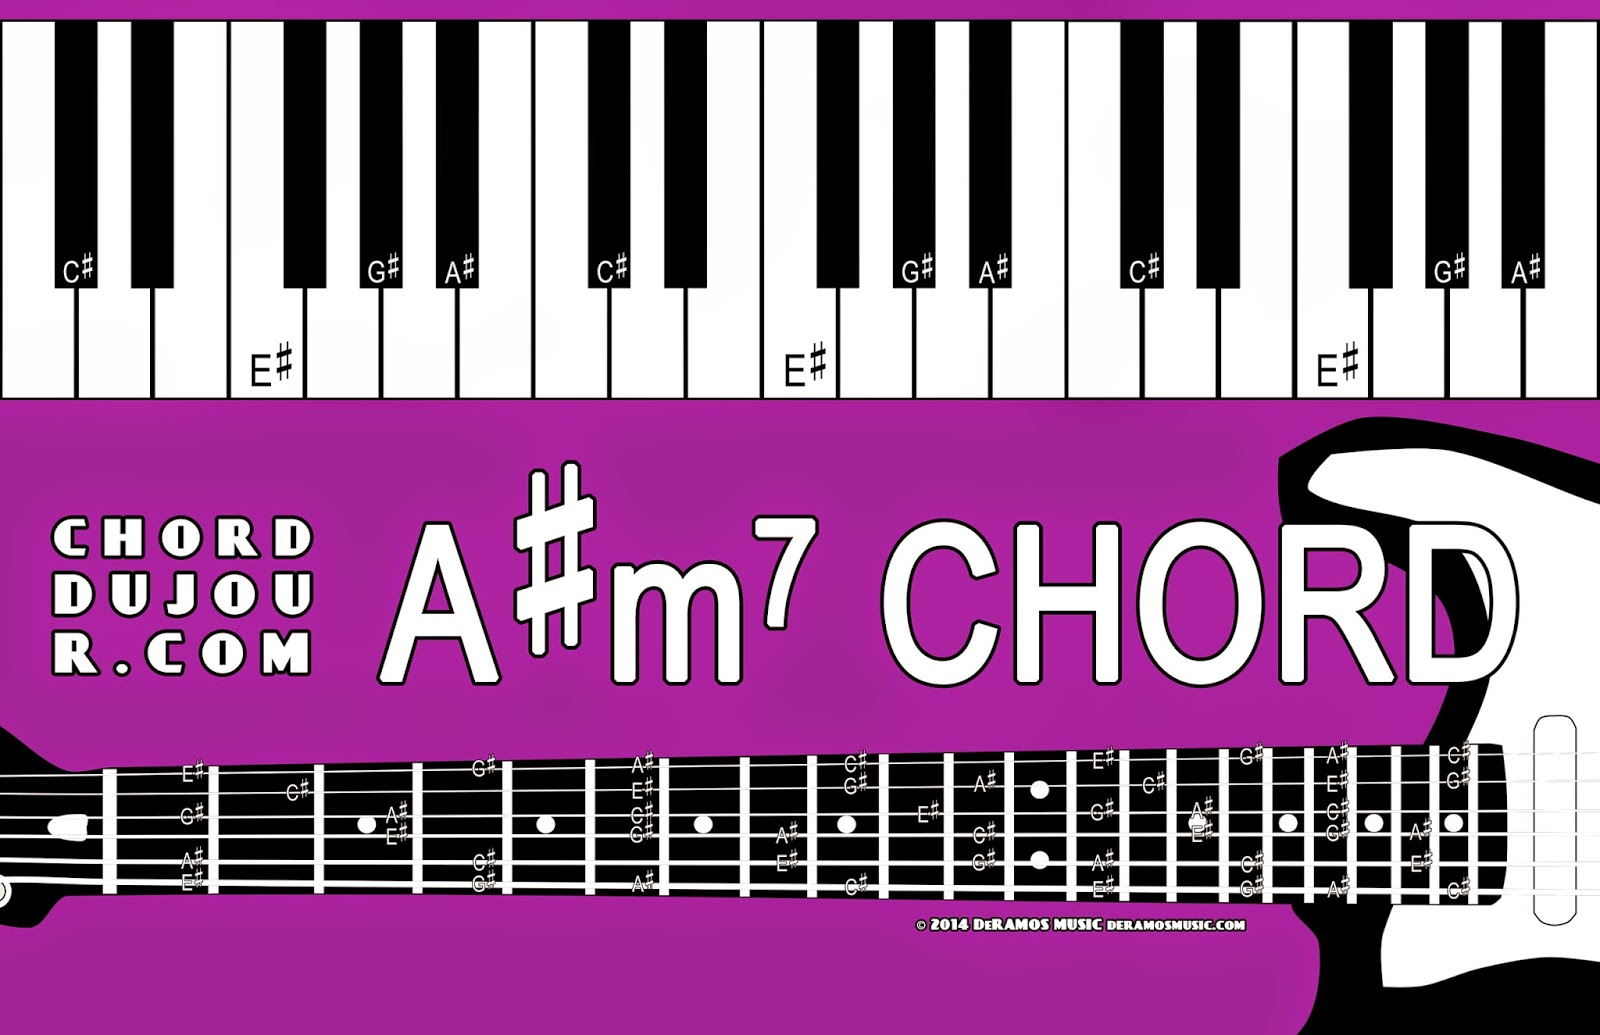 Chord Du Jour Dictionary Am7 Chord